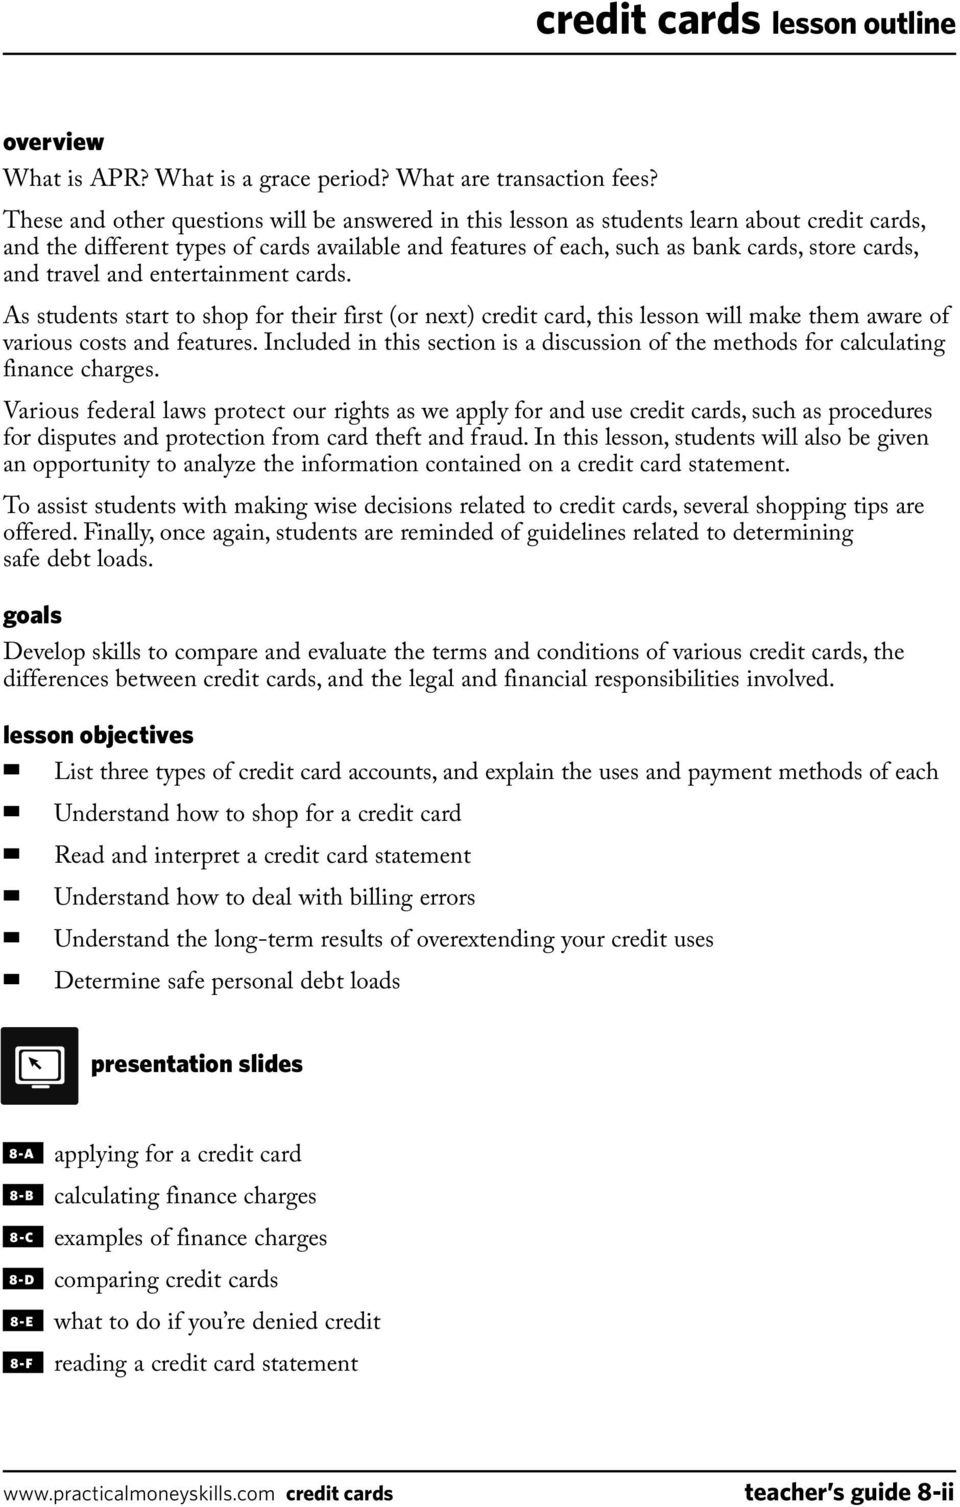 Teacher S Guide Lesson Eight Credit Cards 04 09 Pdf Free Download